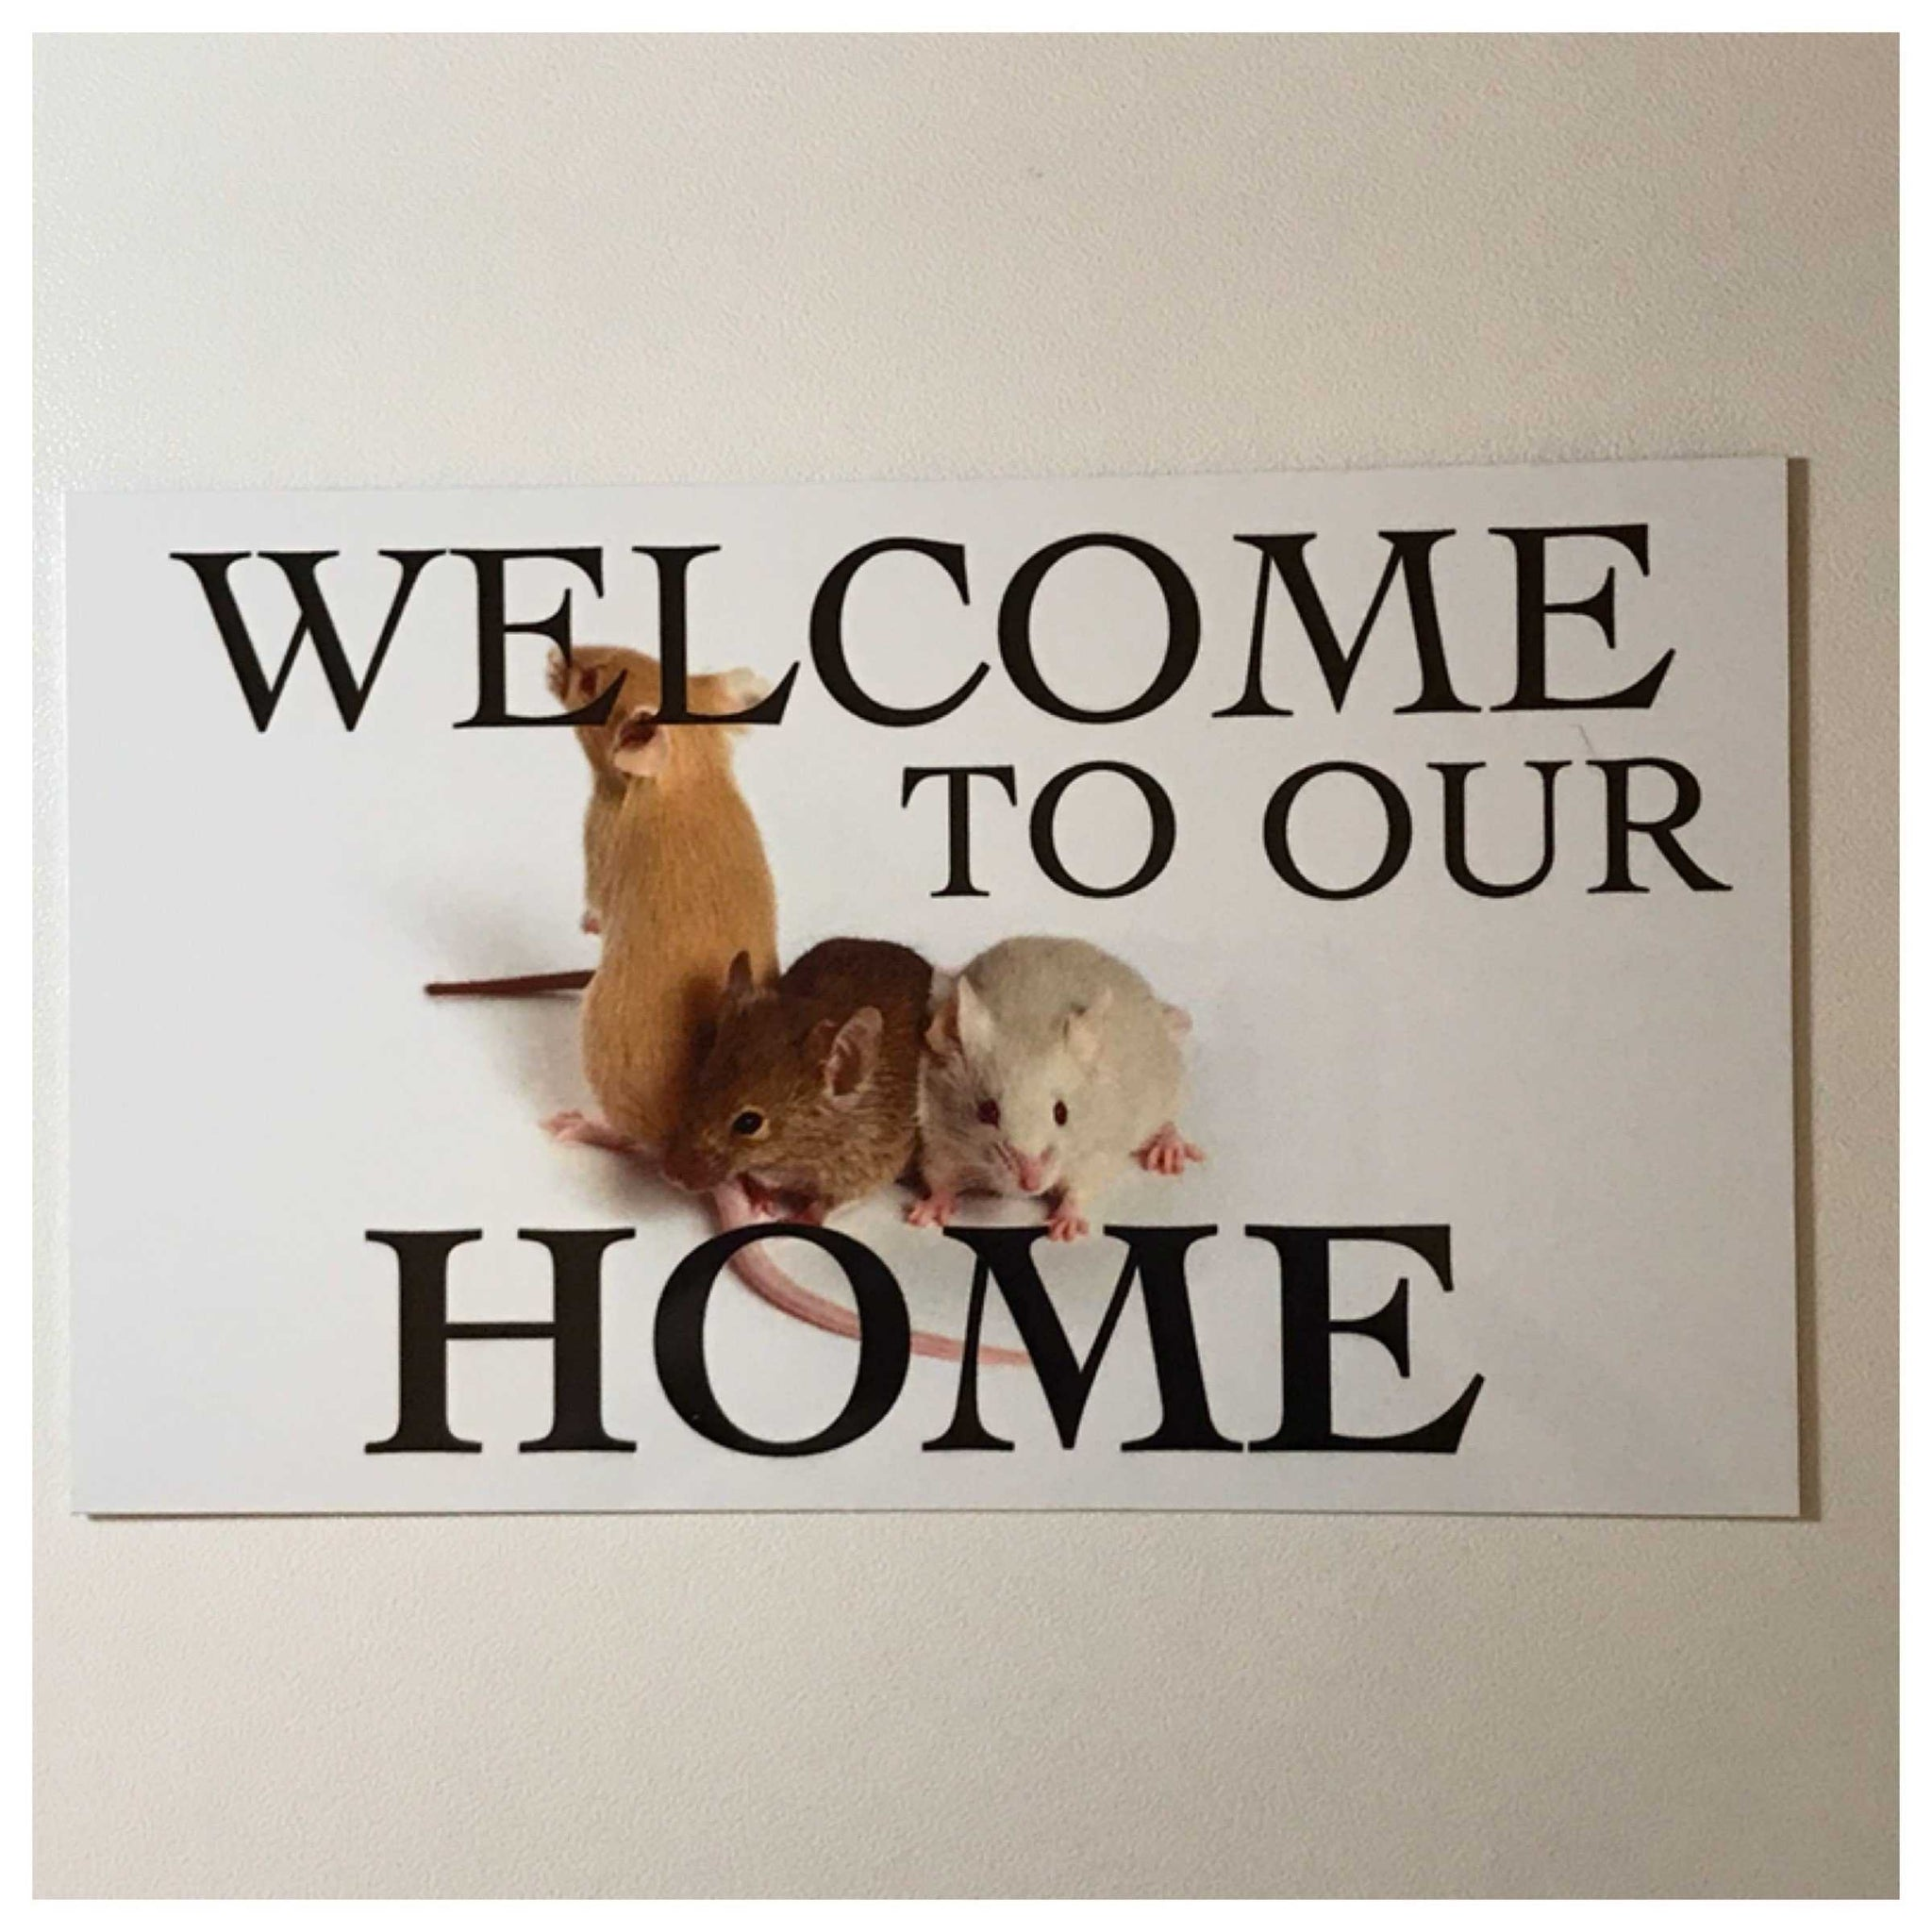 Mouse Mice Welcome To Our Home Sign